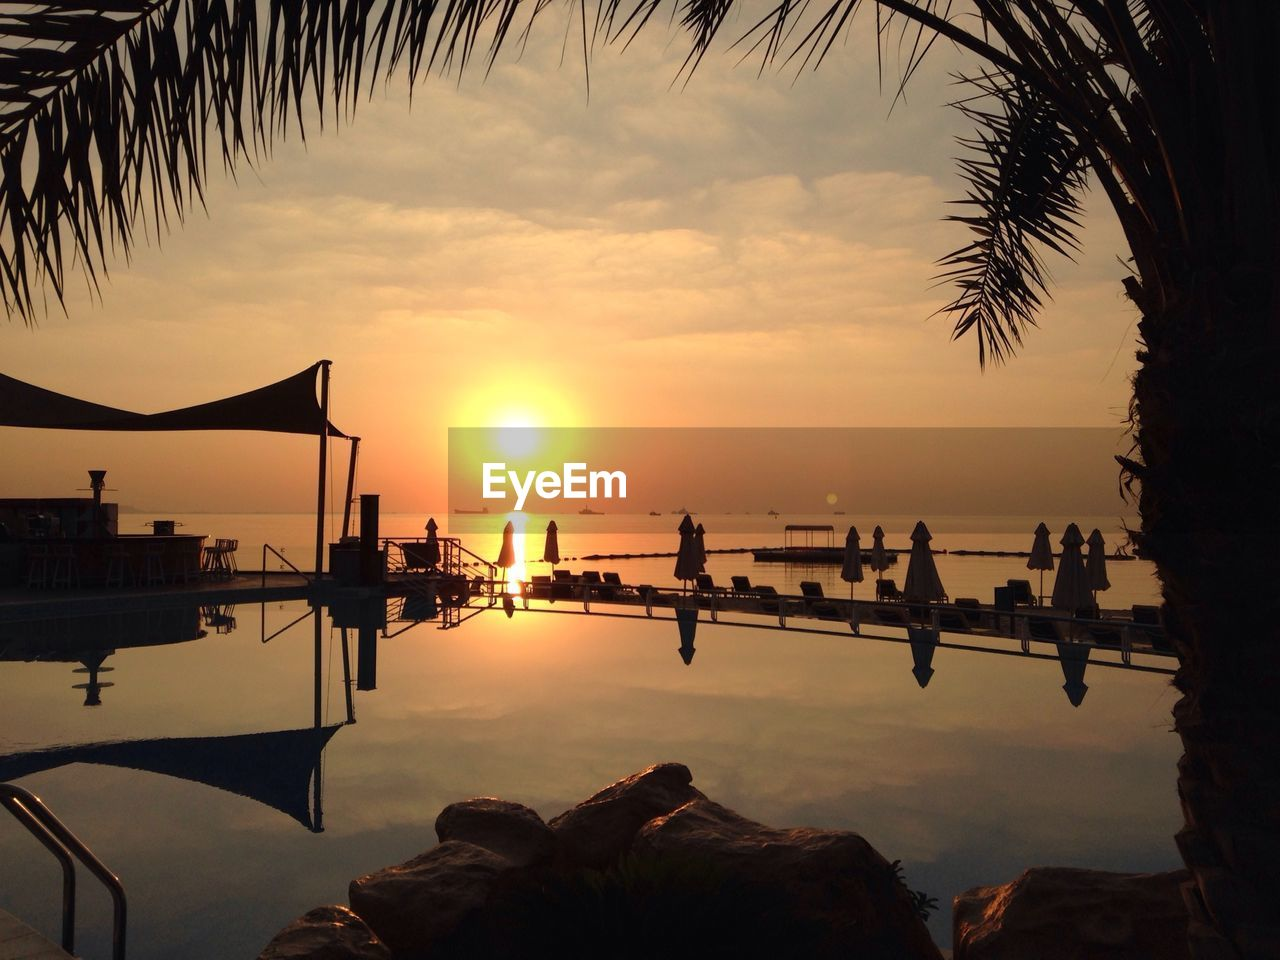 sunset, water, silhouette, nature, sun, beauty in nature, scenics, orange color, sea, sky, reflection, tranquility, palm tree, tree, outdoors, tranquil scene, nautical vessel, travel destinations, swimming pool, men, real people, day, people